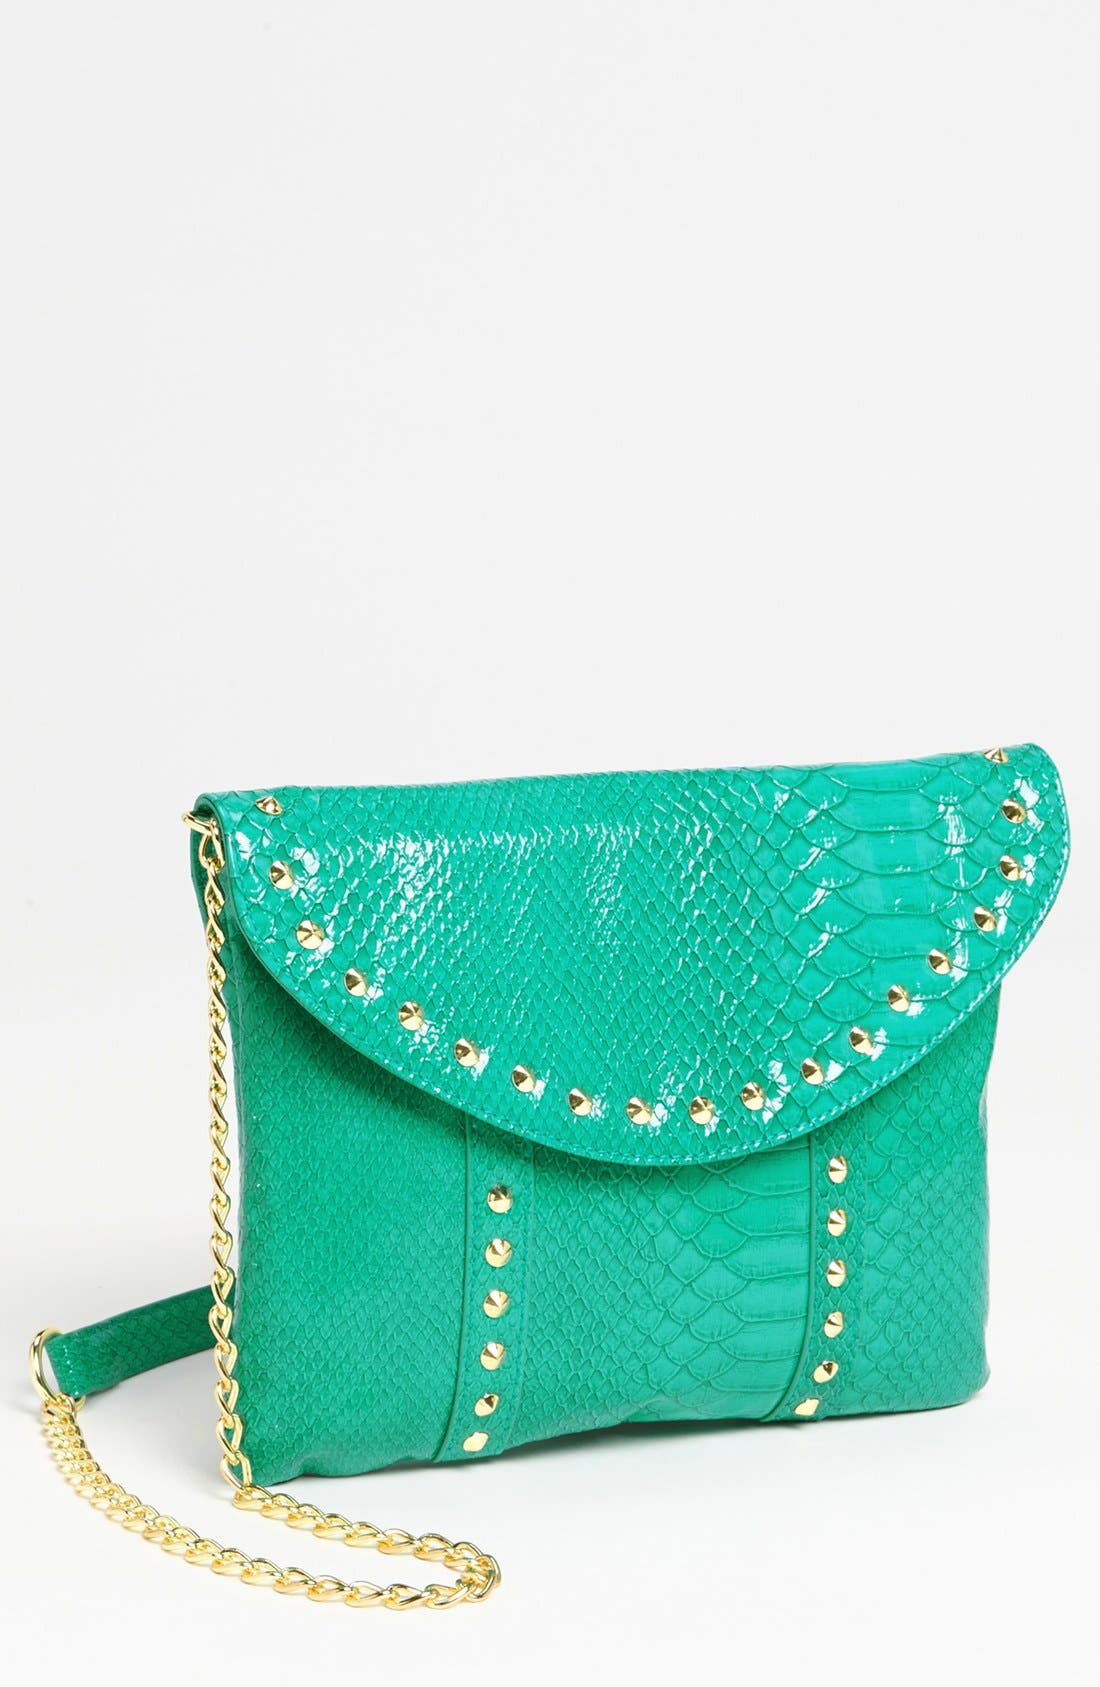 Alternate Image 1 Selected - Steven by Steve Madden Snake Embossed Faux Leather Crossbody Clutch